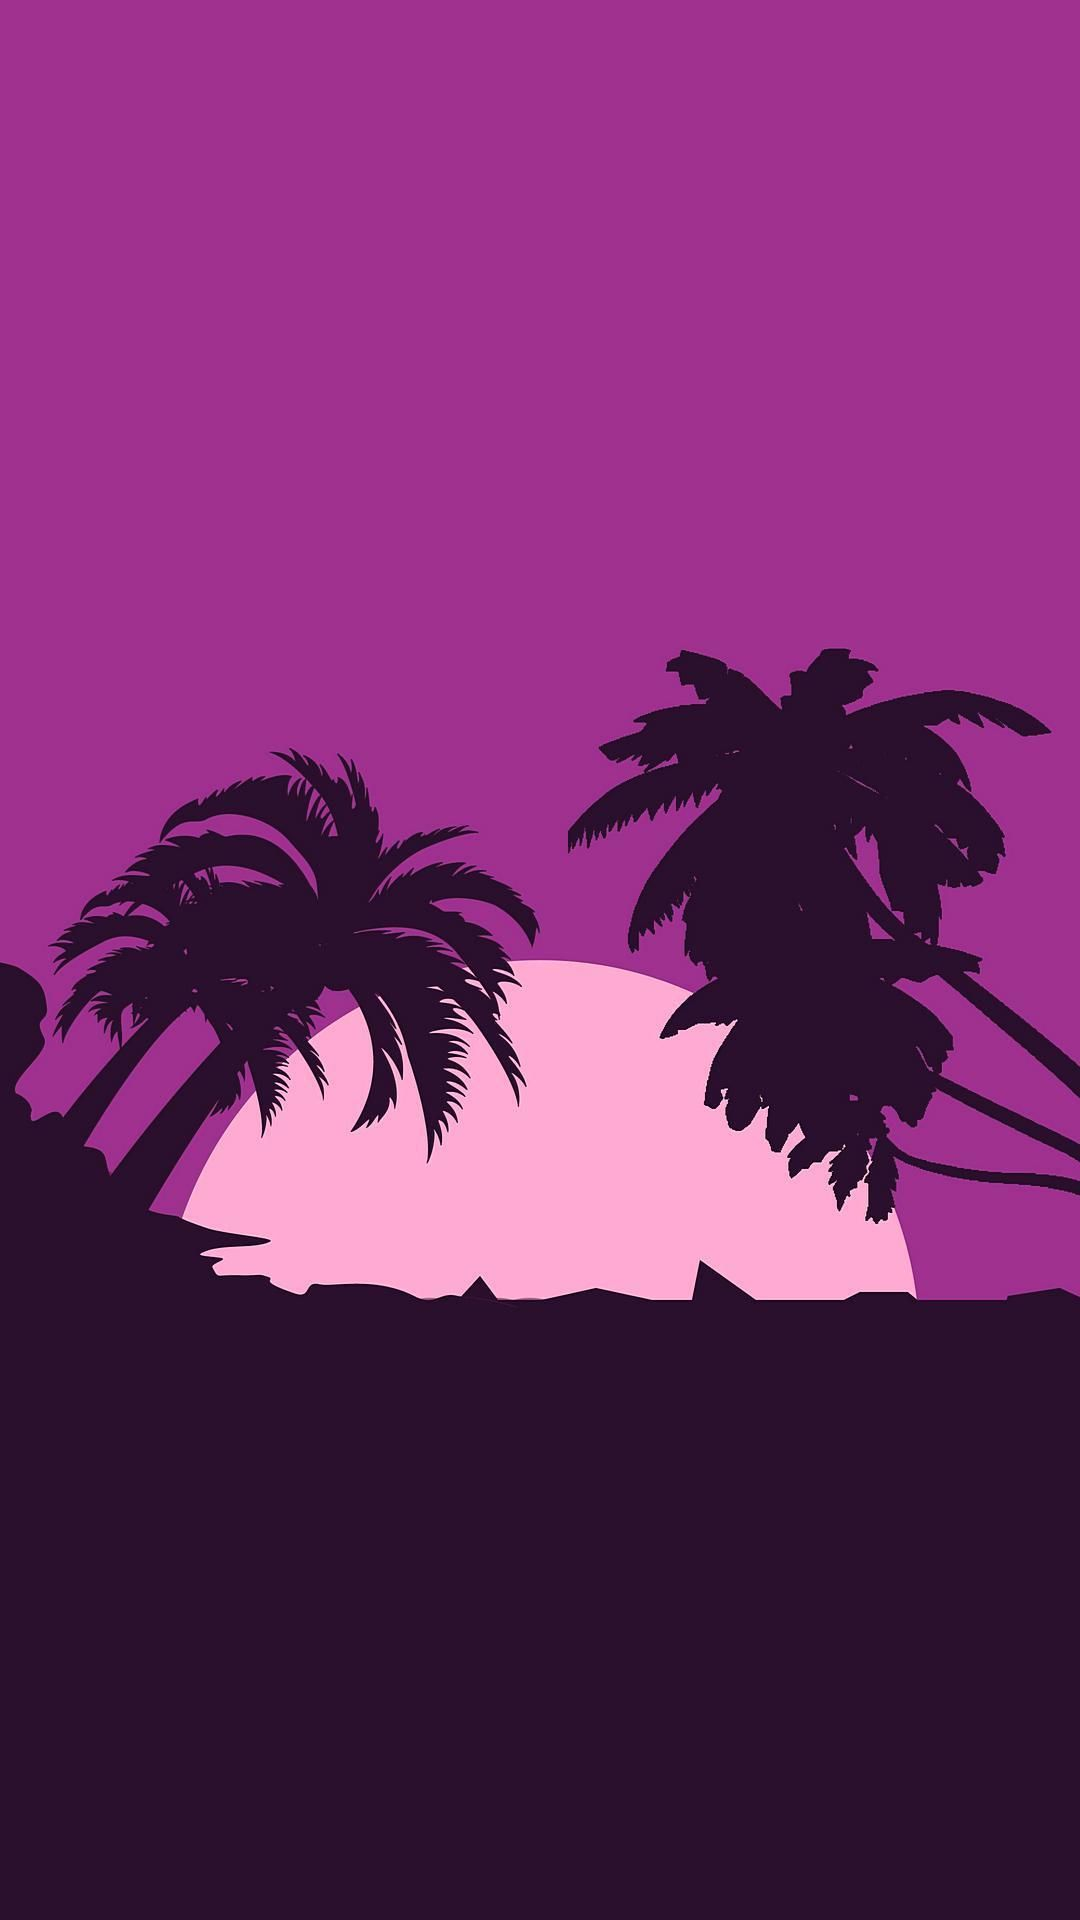 Minimalist Android FHD Pink Palm Tree Transparent Background ⋆ Traxzee